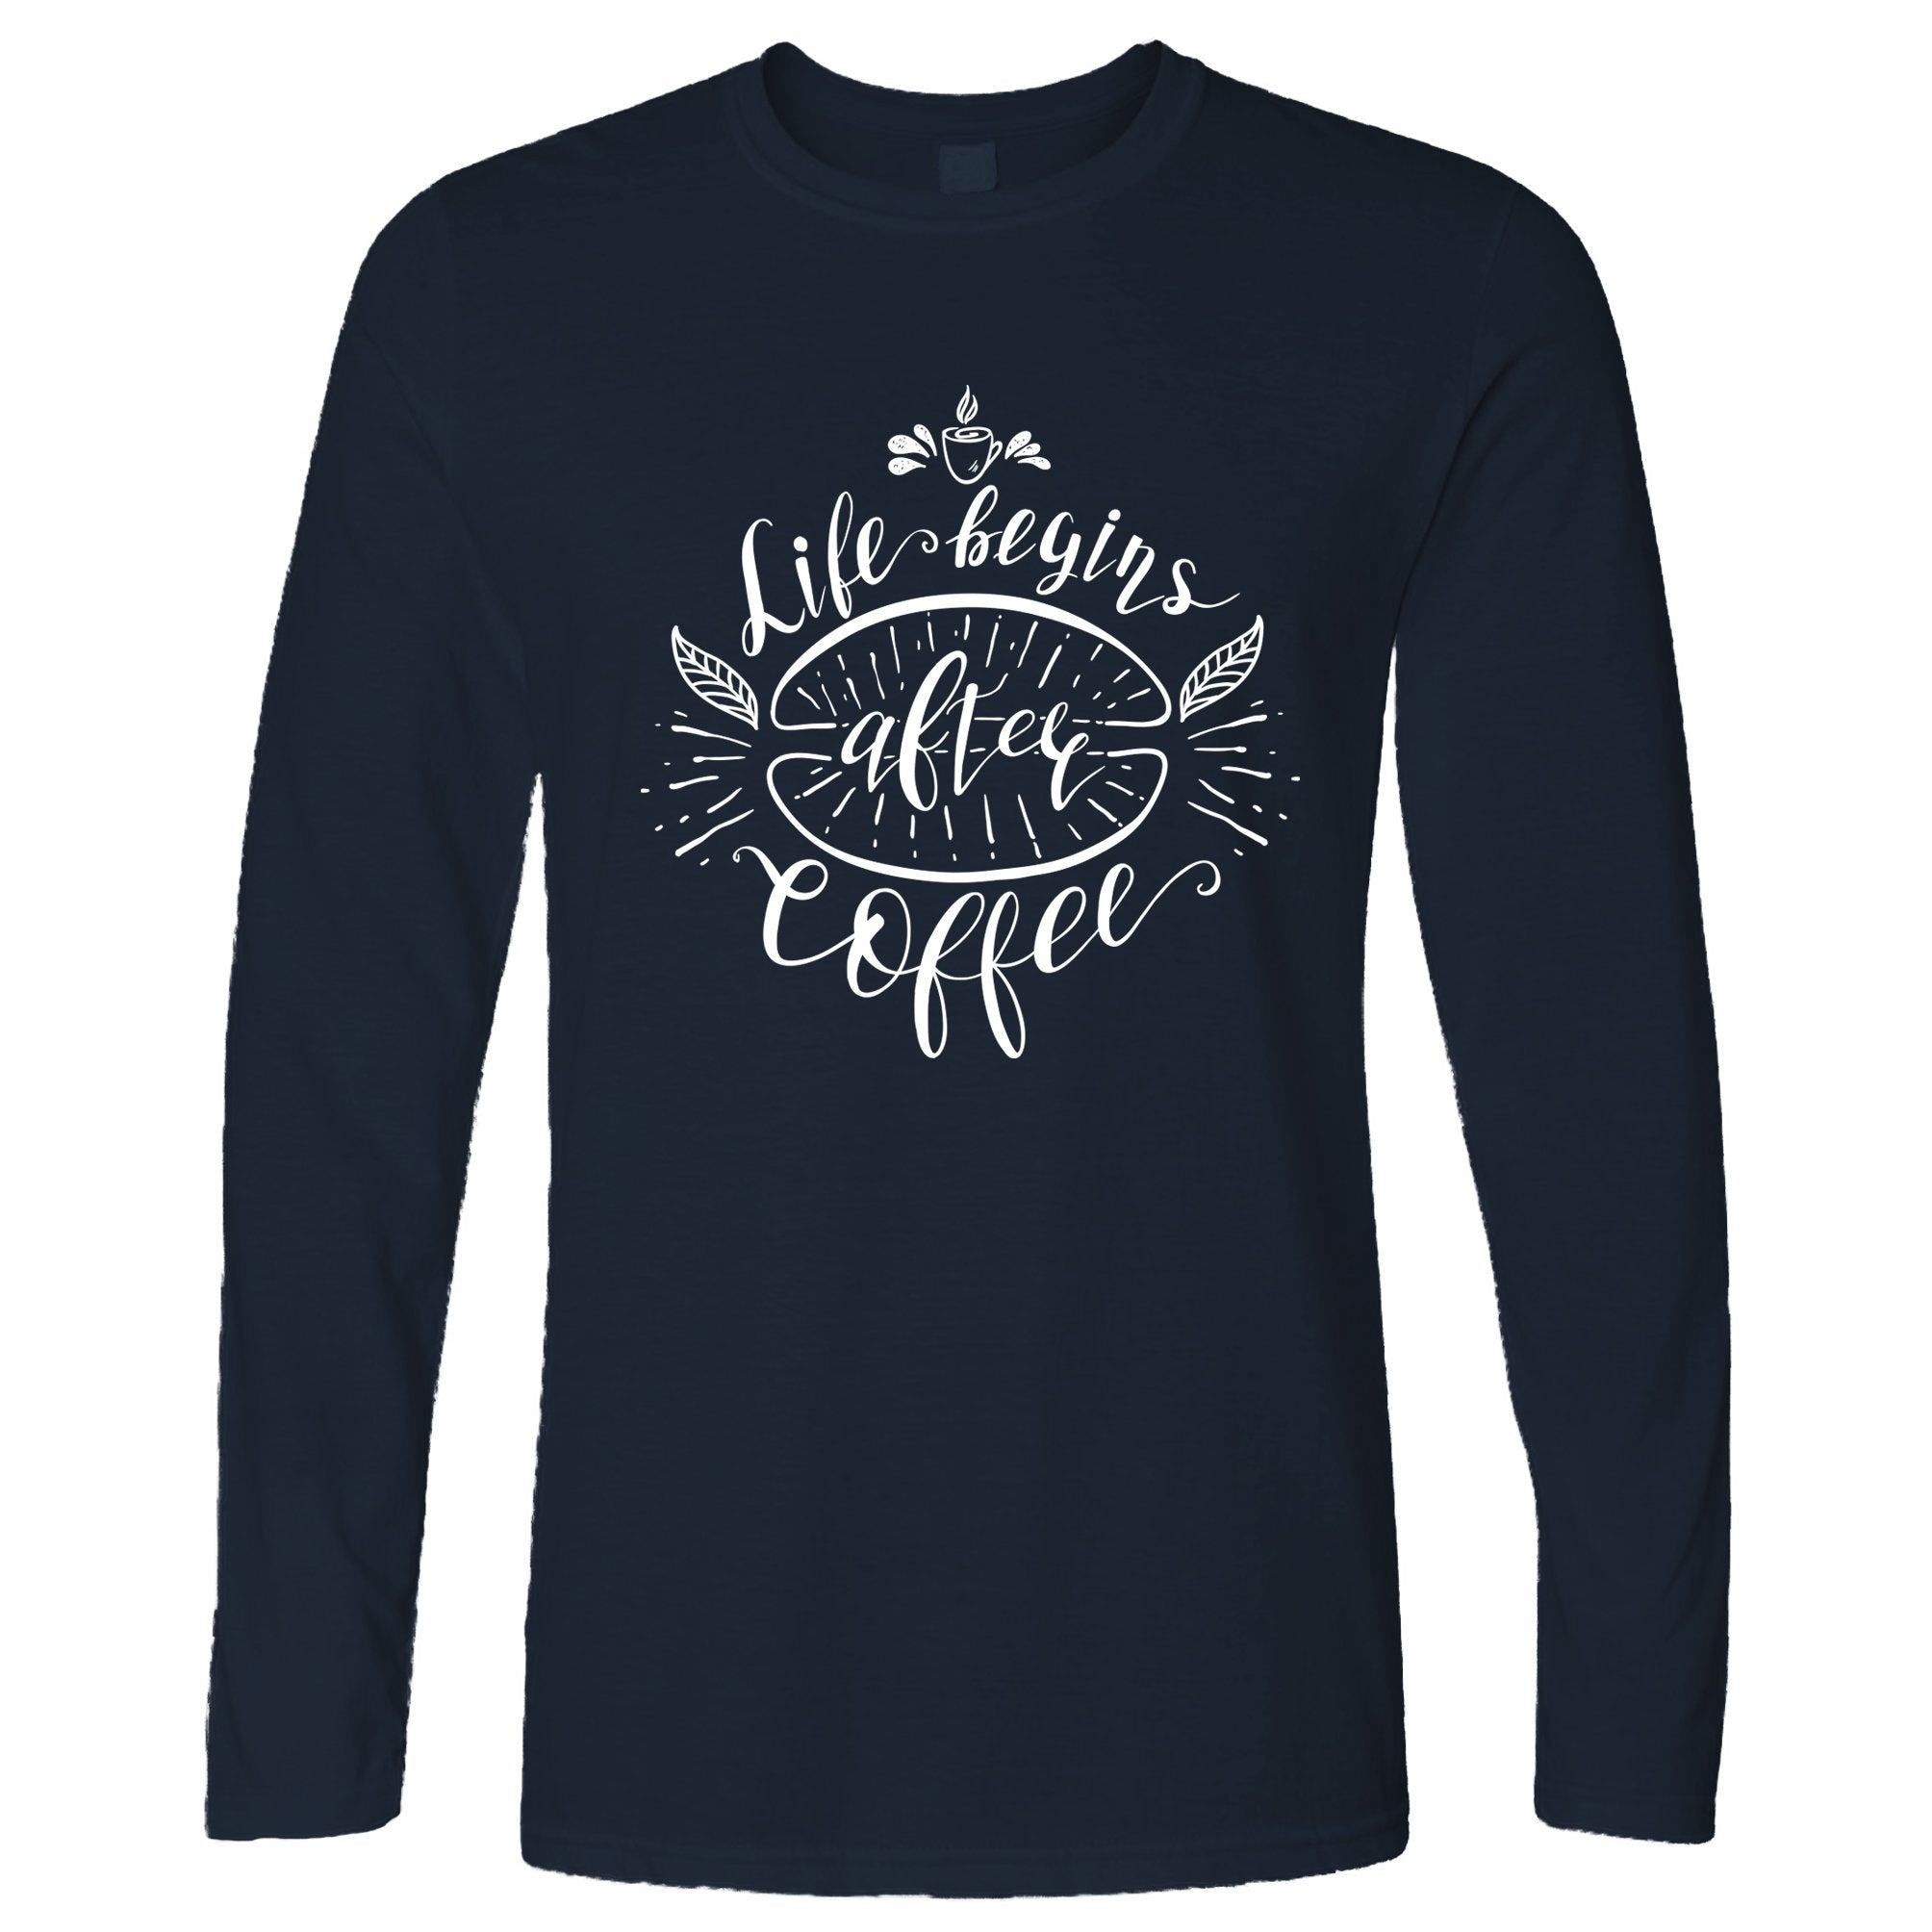 Novelty Slogan Long Sleeve Life Begins After Coffee Joke T-Shirt